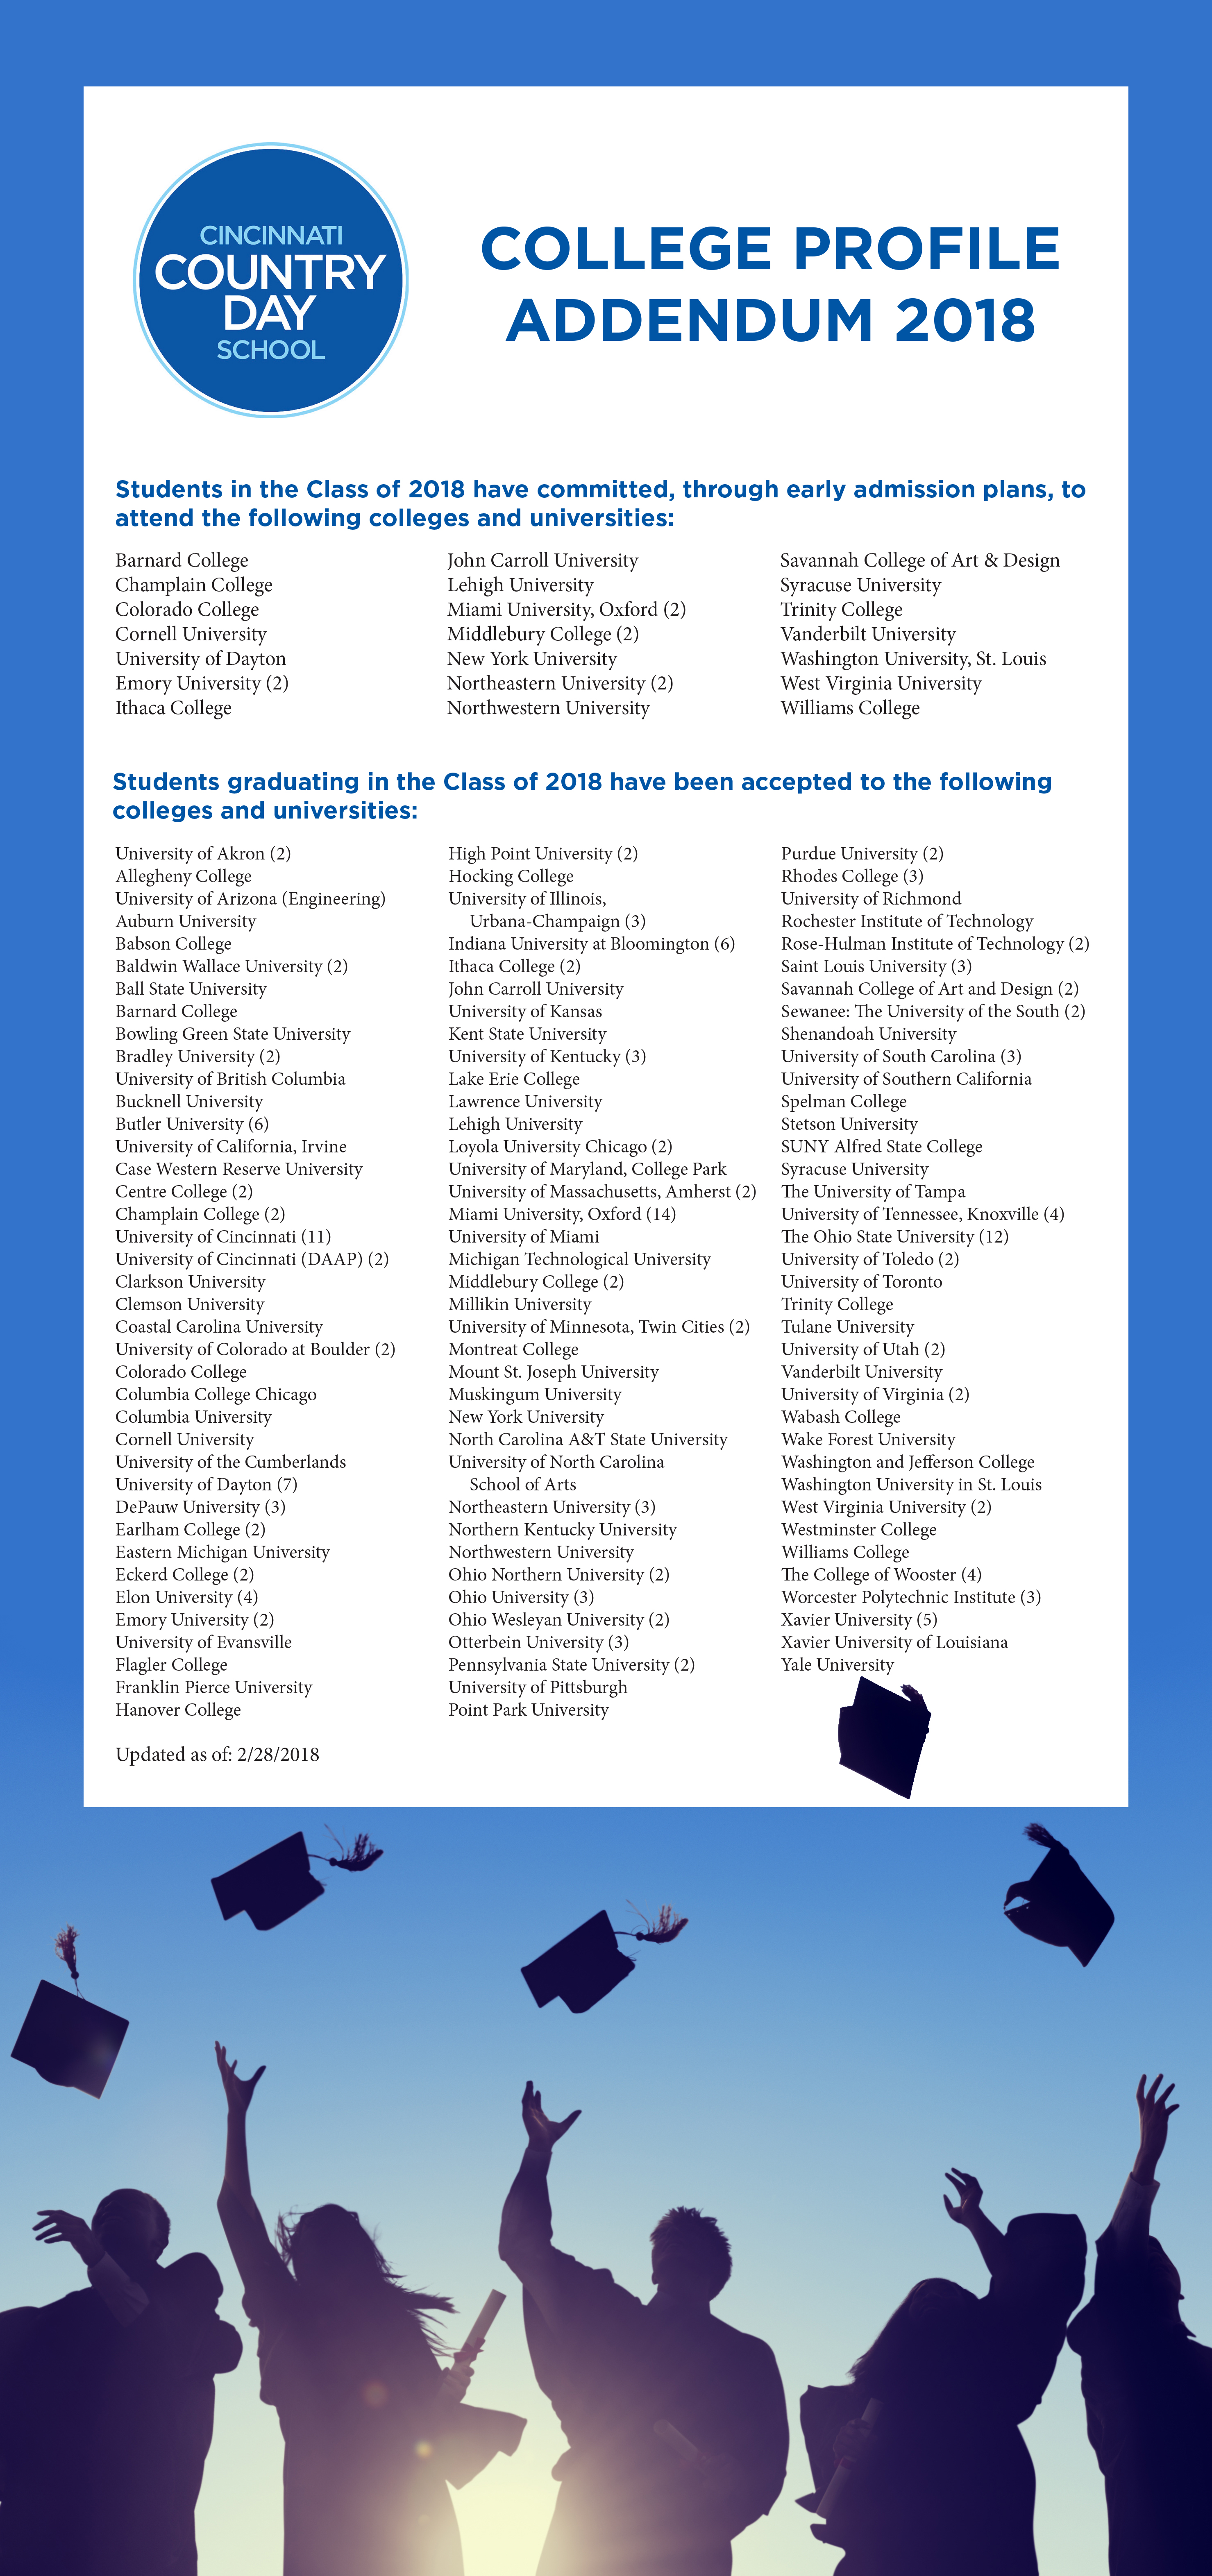 List of colleges that students were accepted